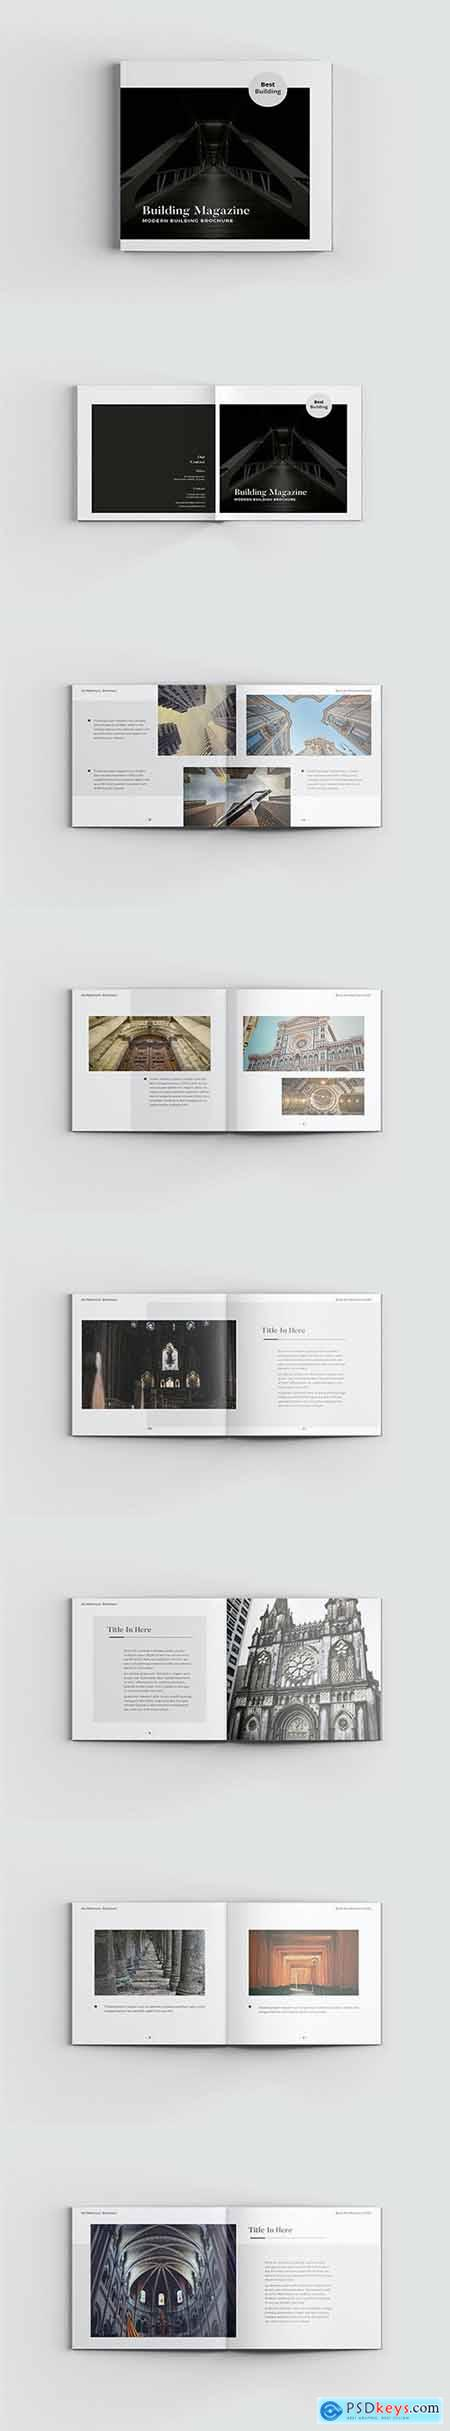 Building Square Architecture Brochure